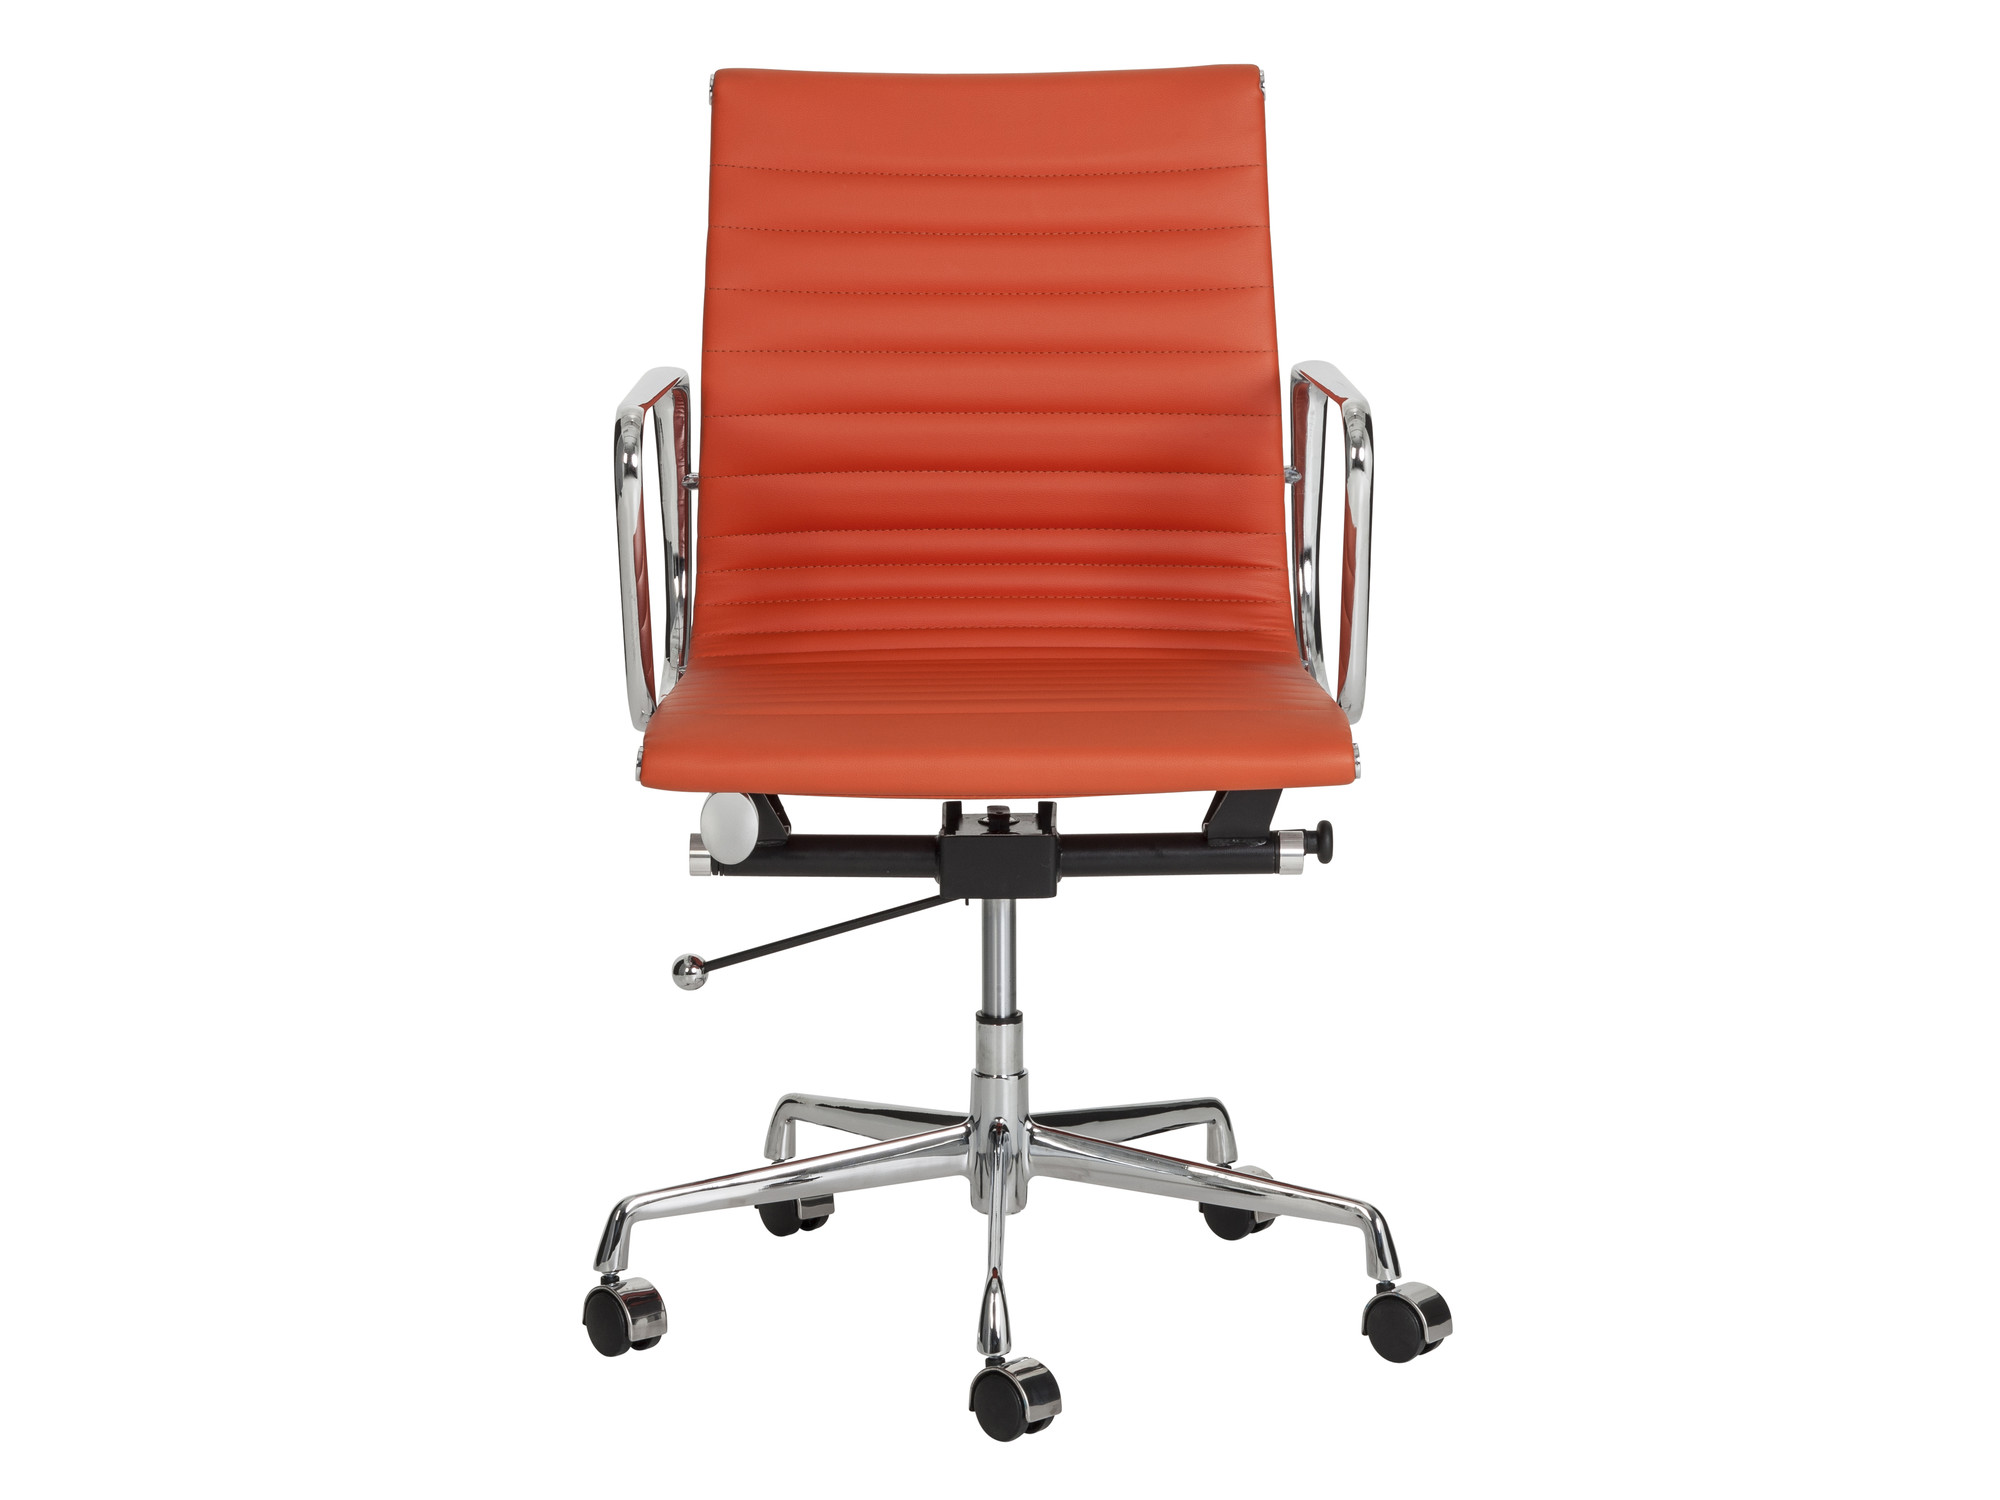 new eames classic replica management office chair ebay. Black Bedroom Furniture Sets. Home Design Ideas